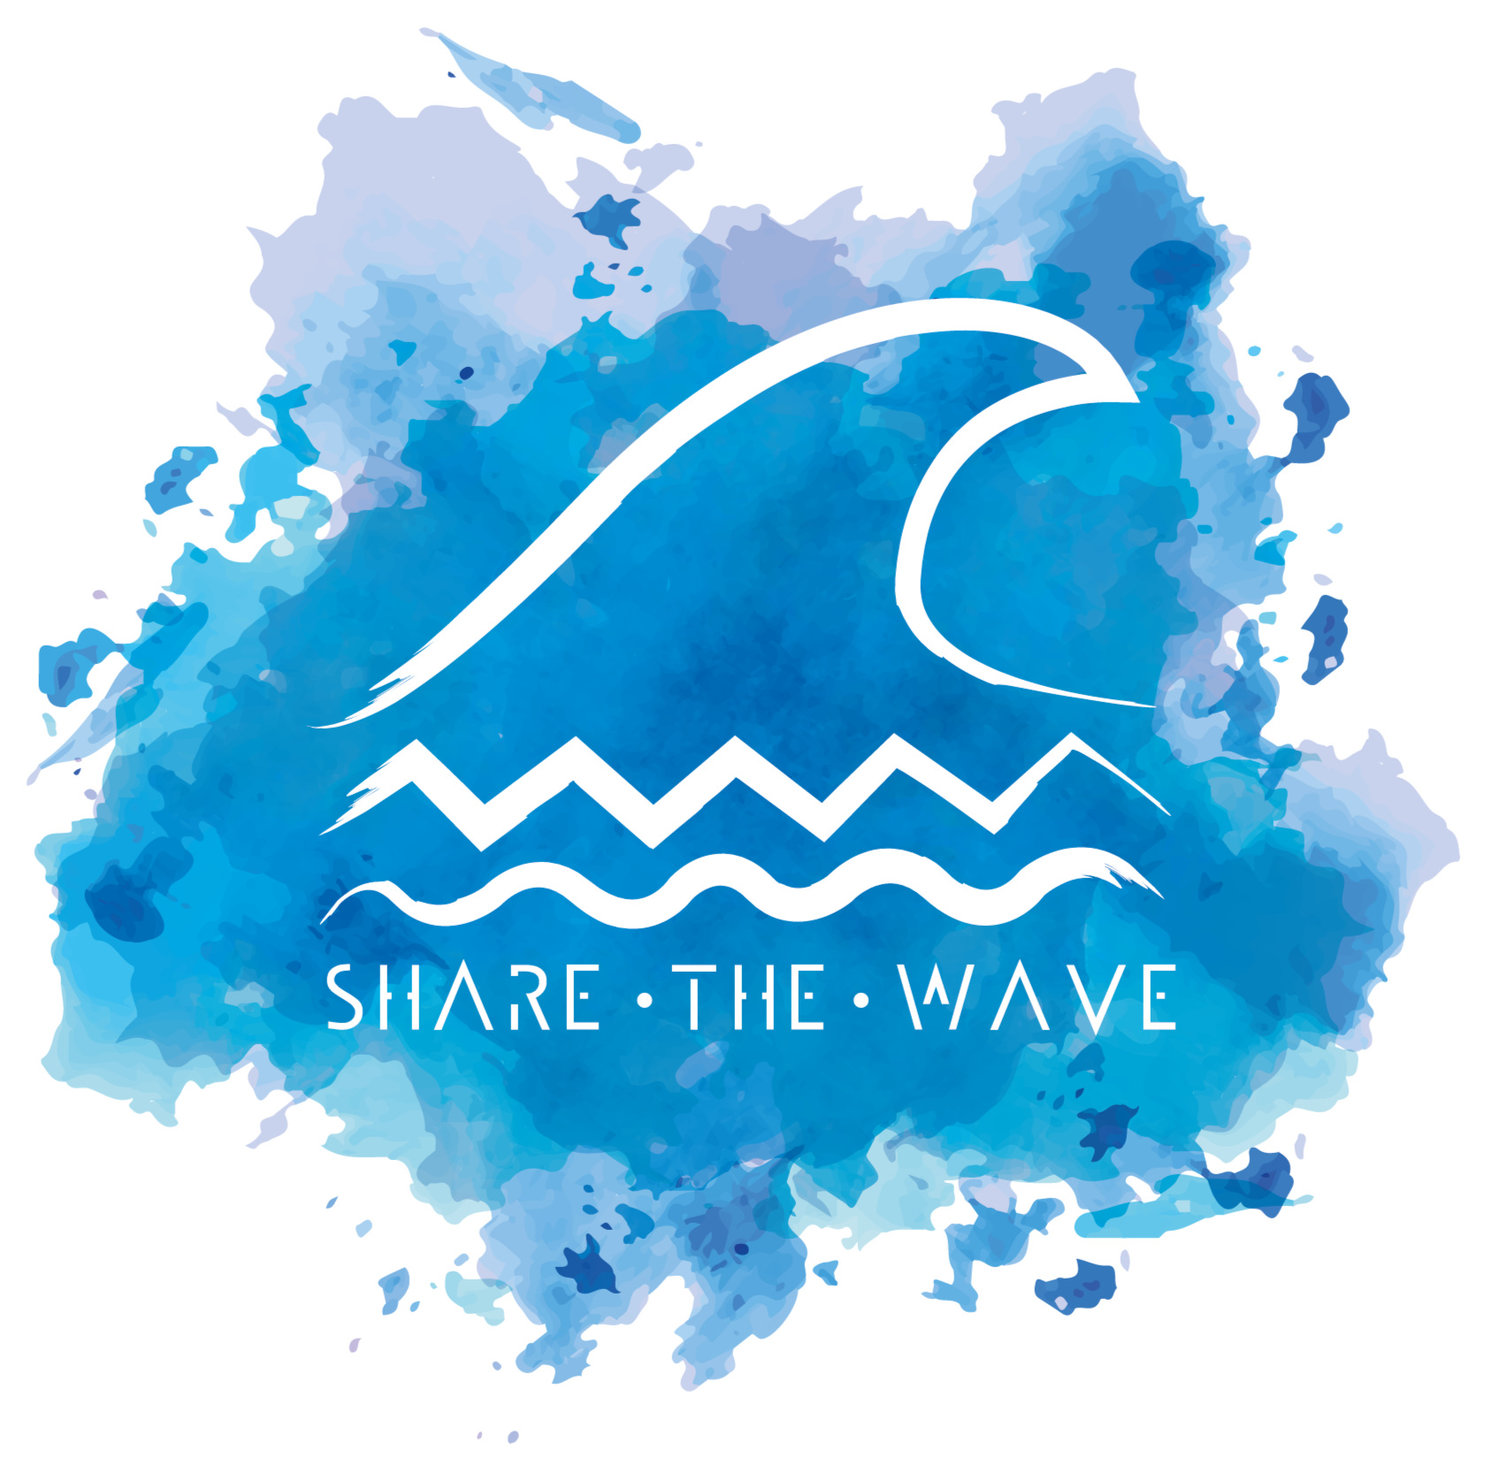 Share The Wave